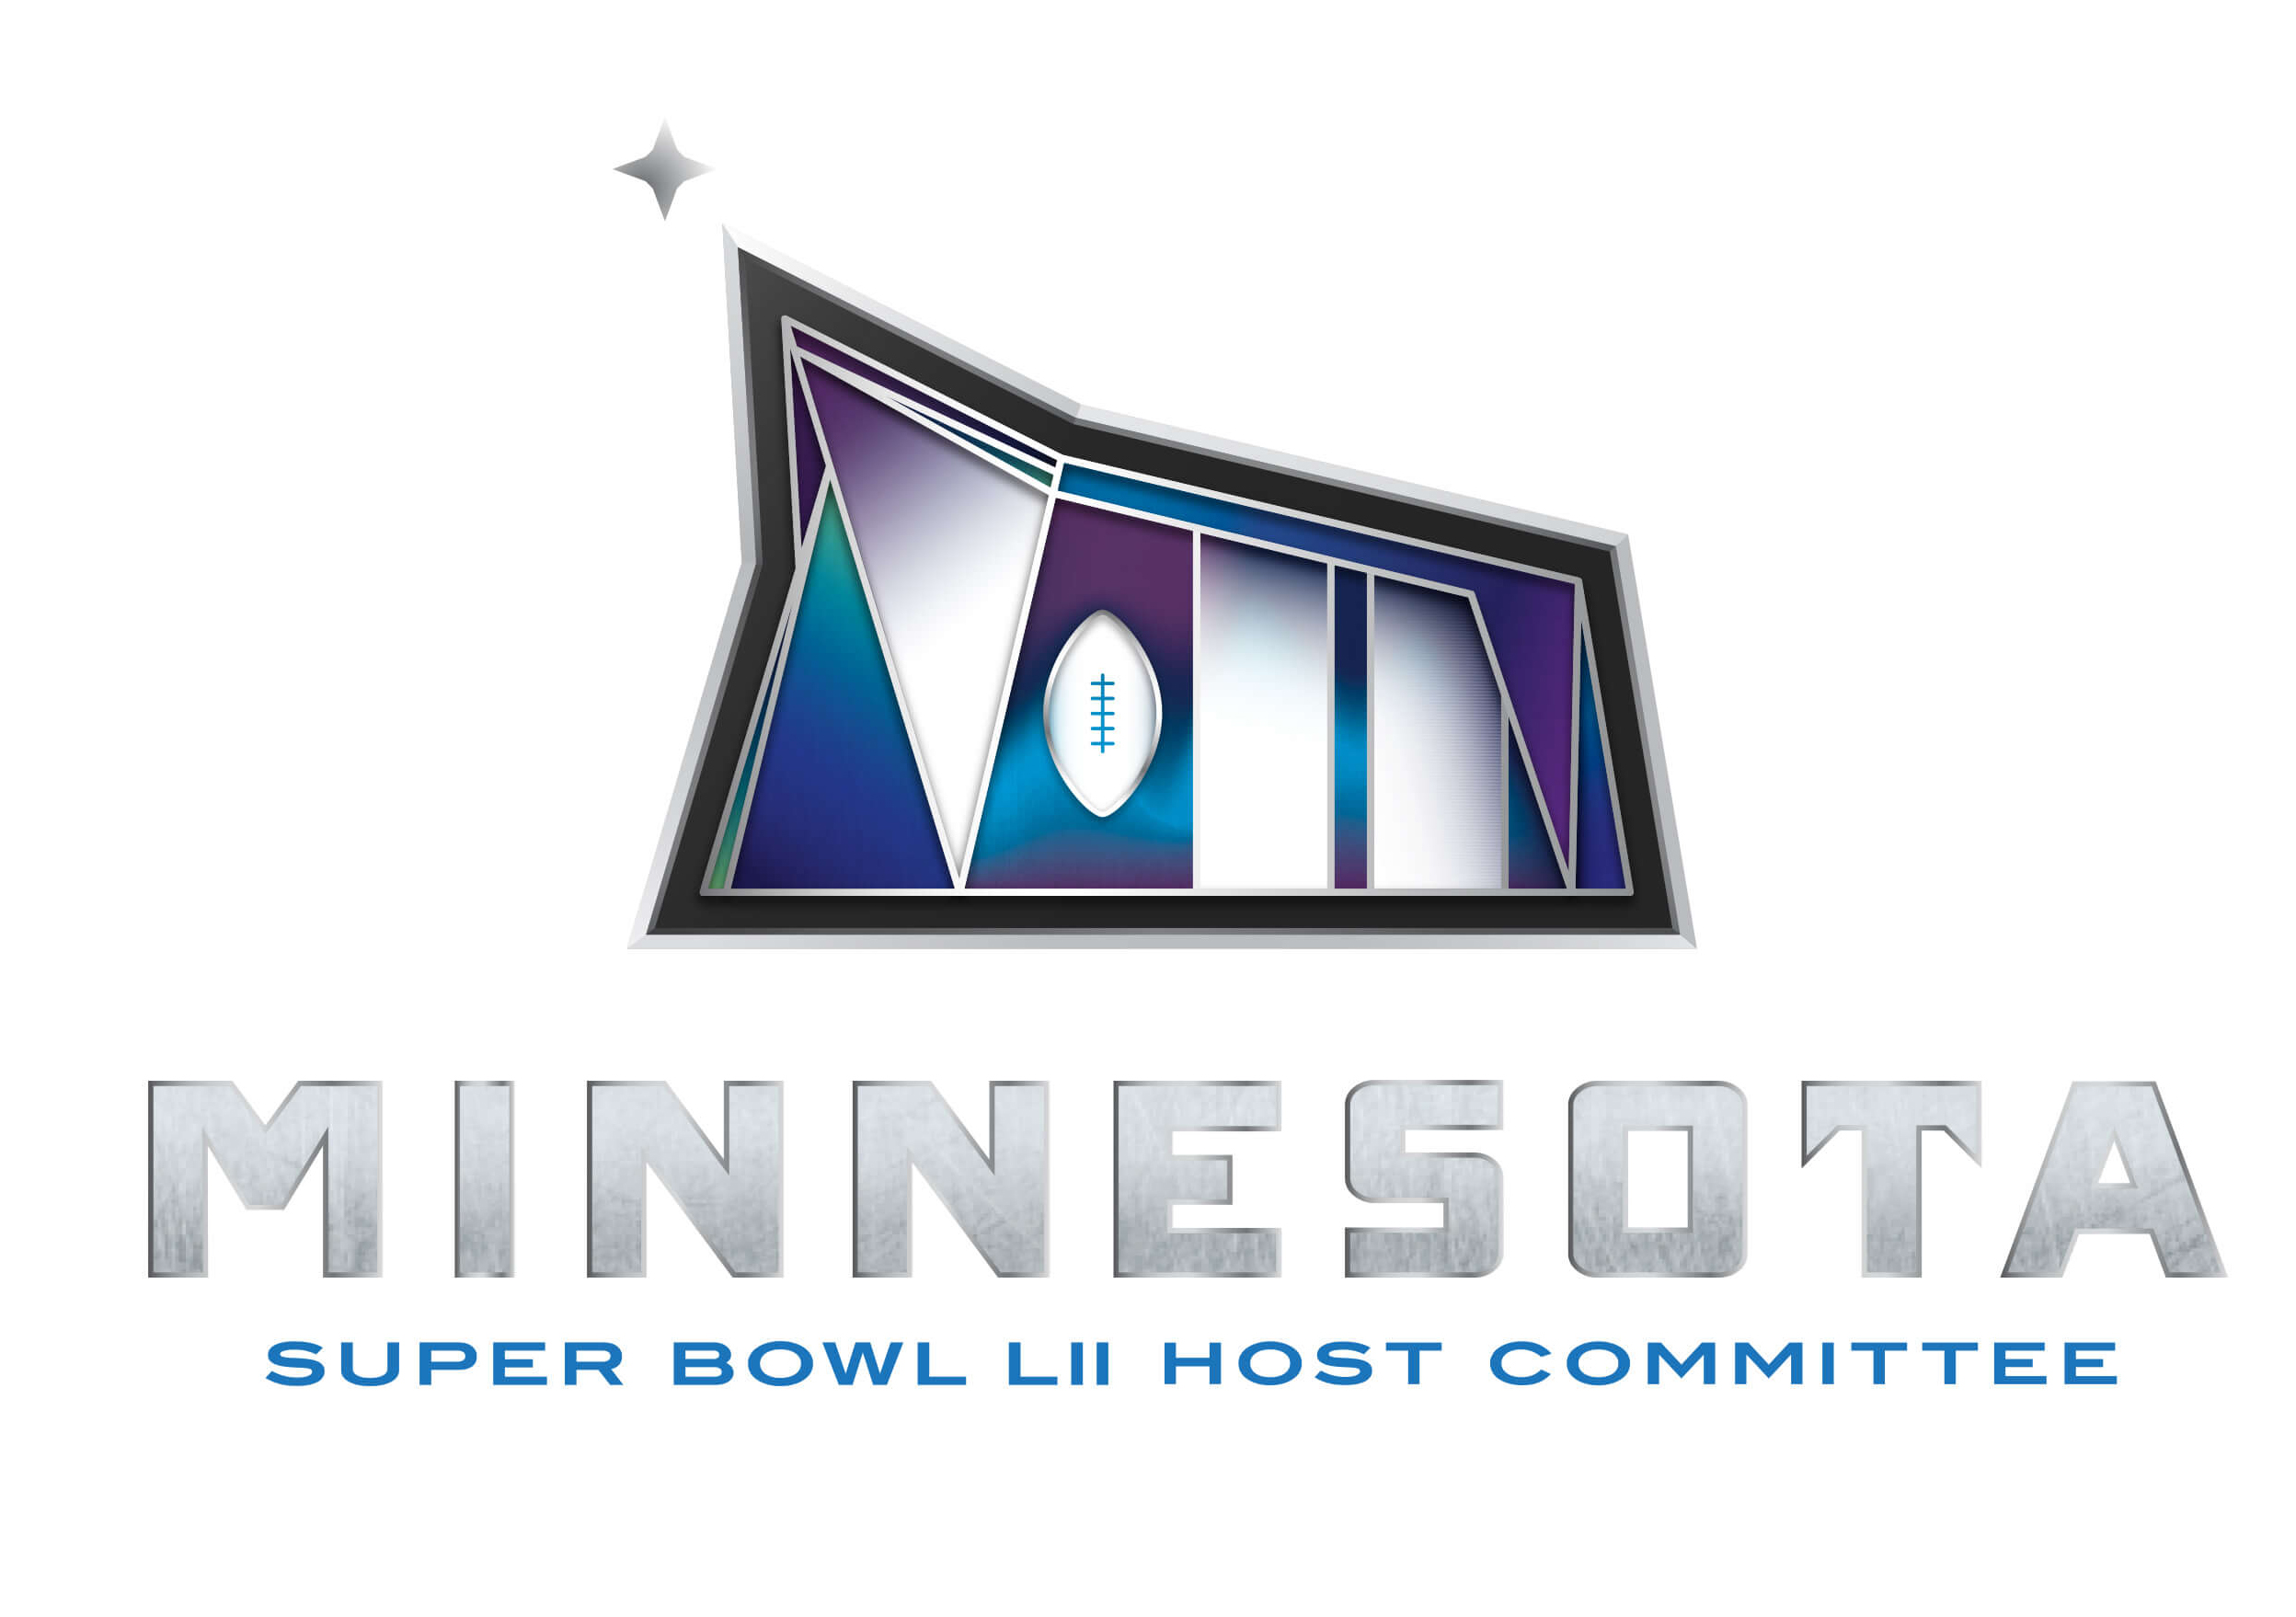 Super Bowl 52 Advisory Board & Host Committee